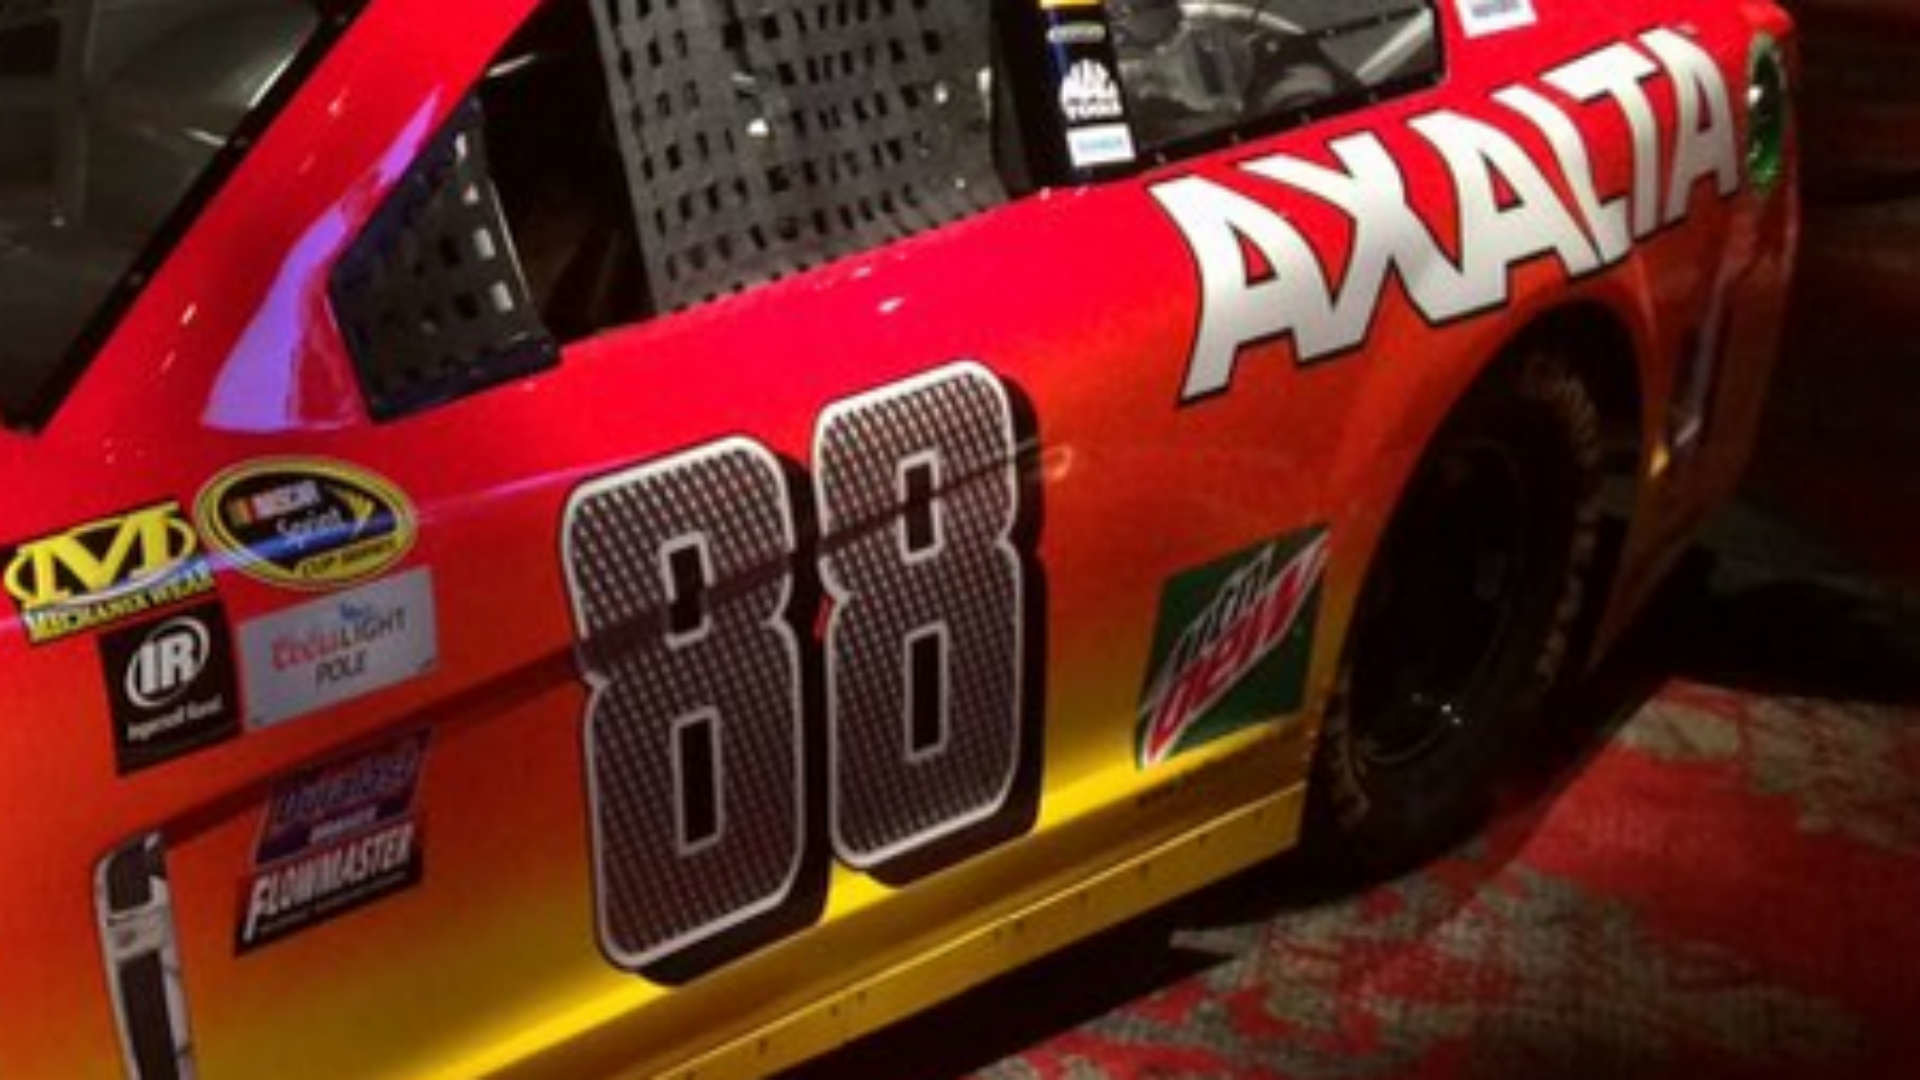 1920x1080 Dale Earnhardt Jr. unveils No. 88 paint scheme | NASCAR | Sporting News